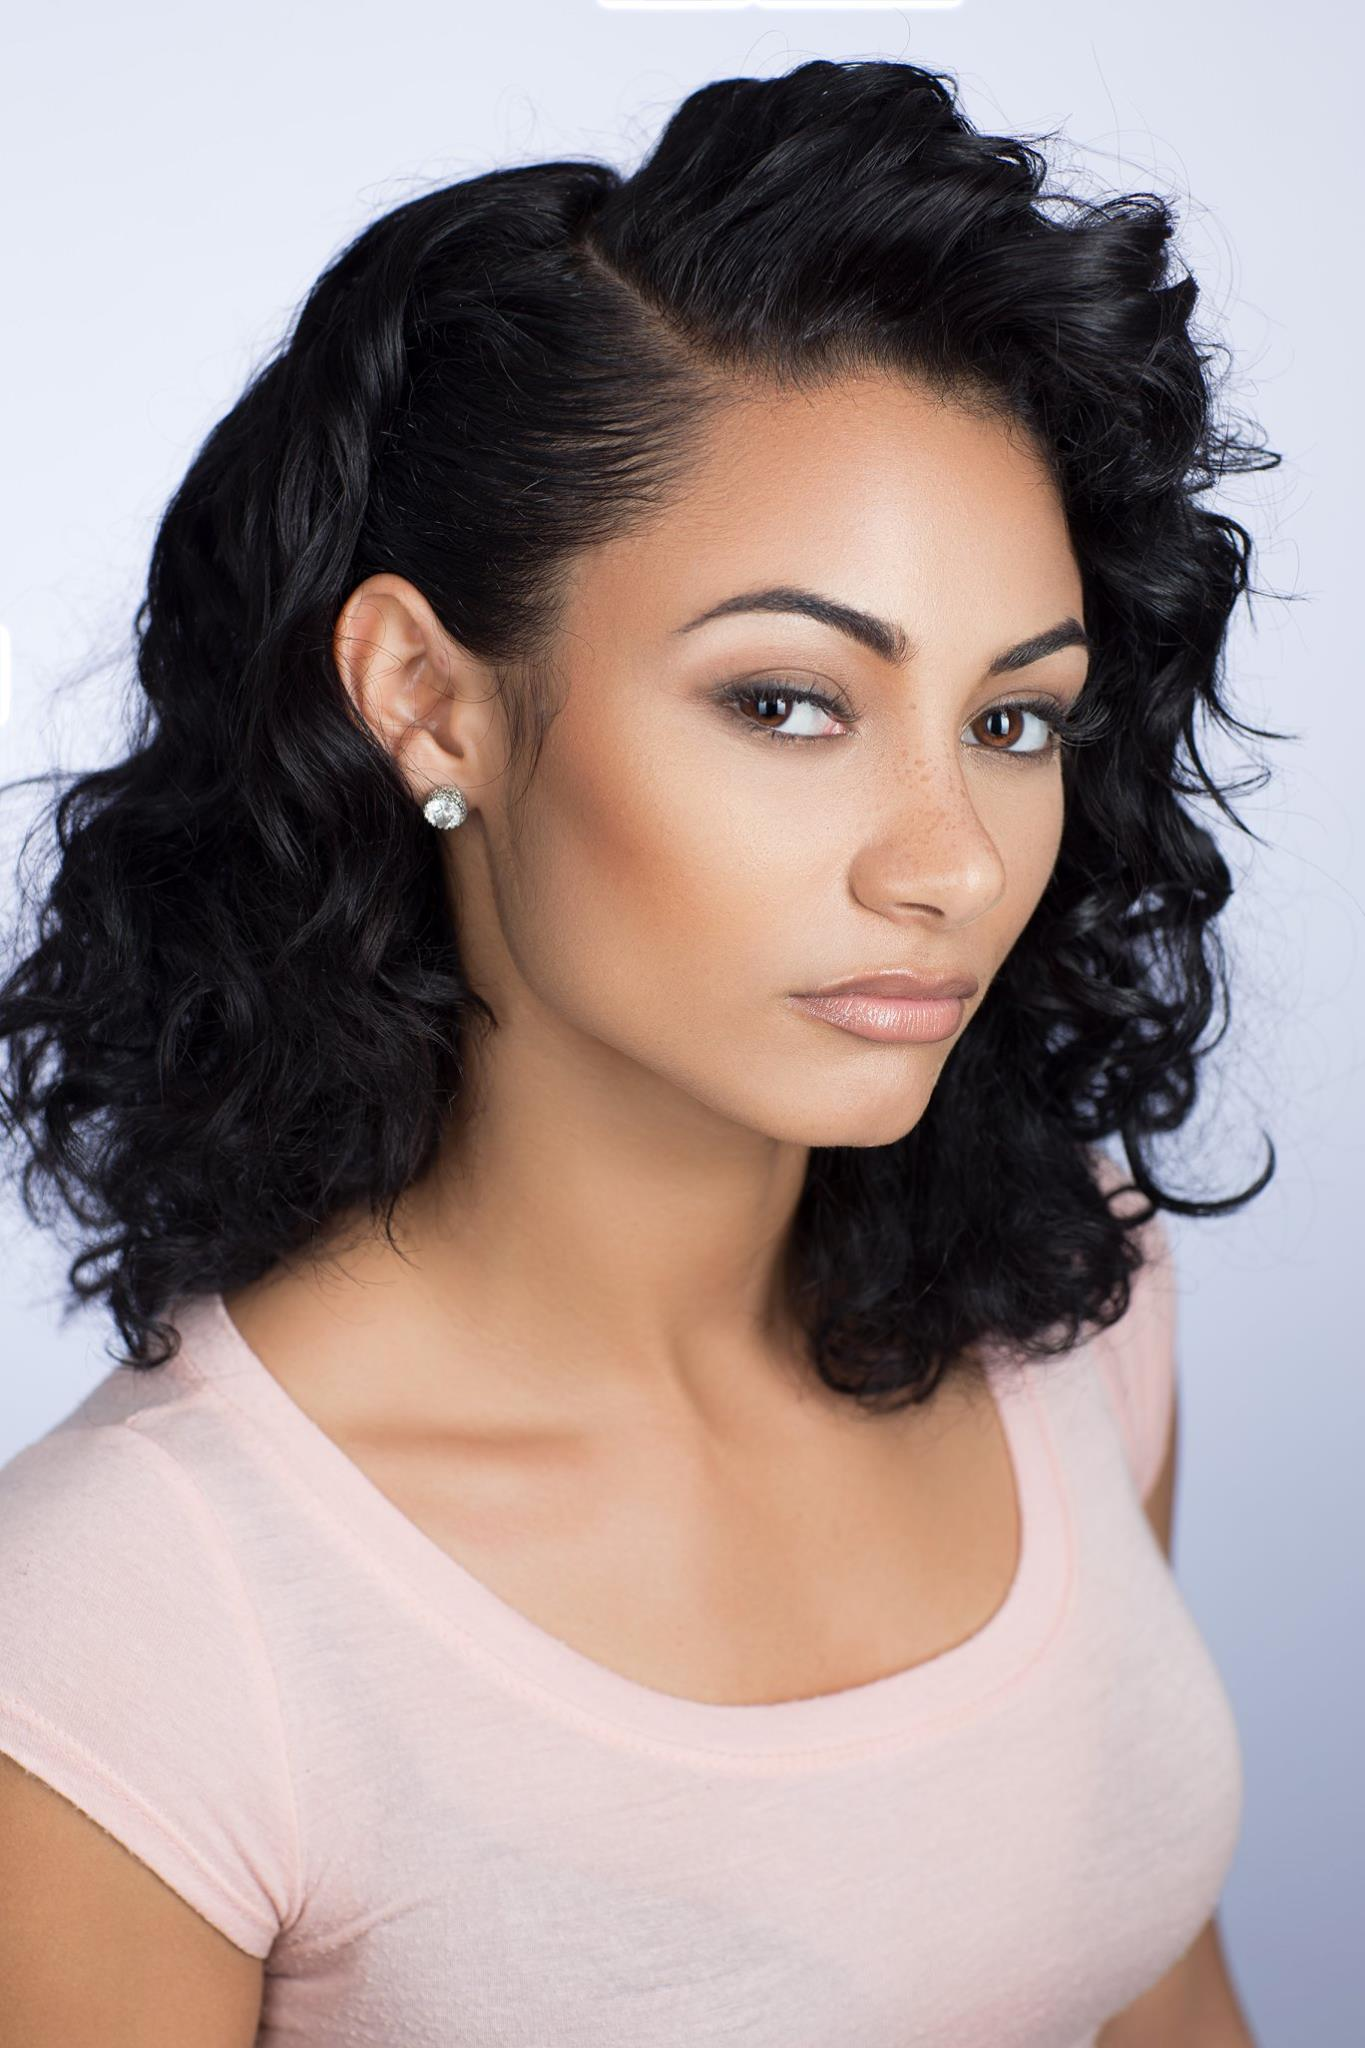 AE Photography - Headshot 3